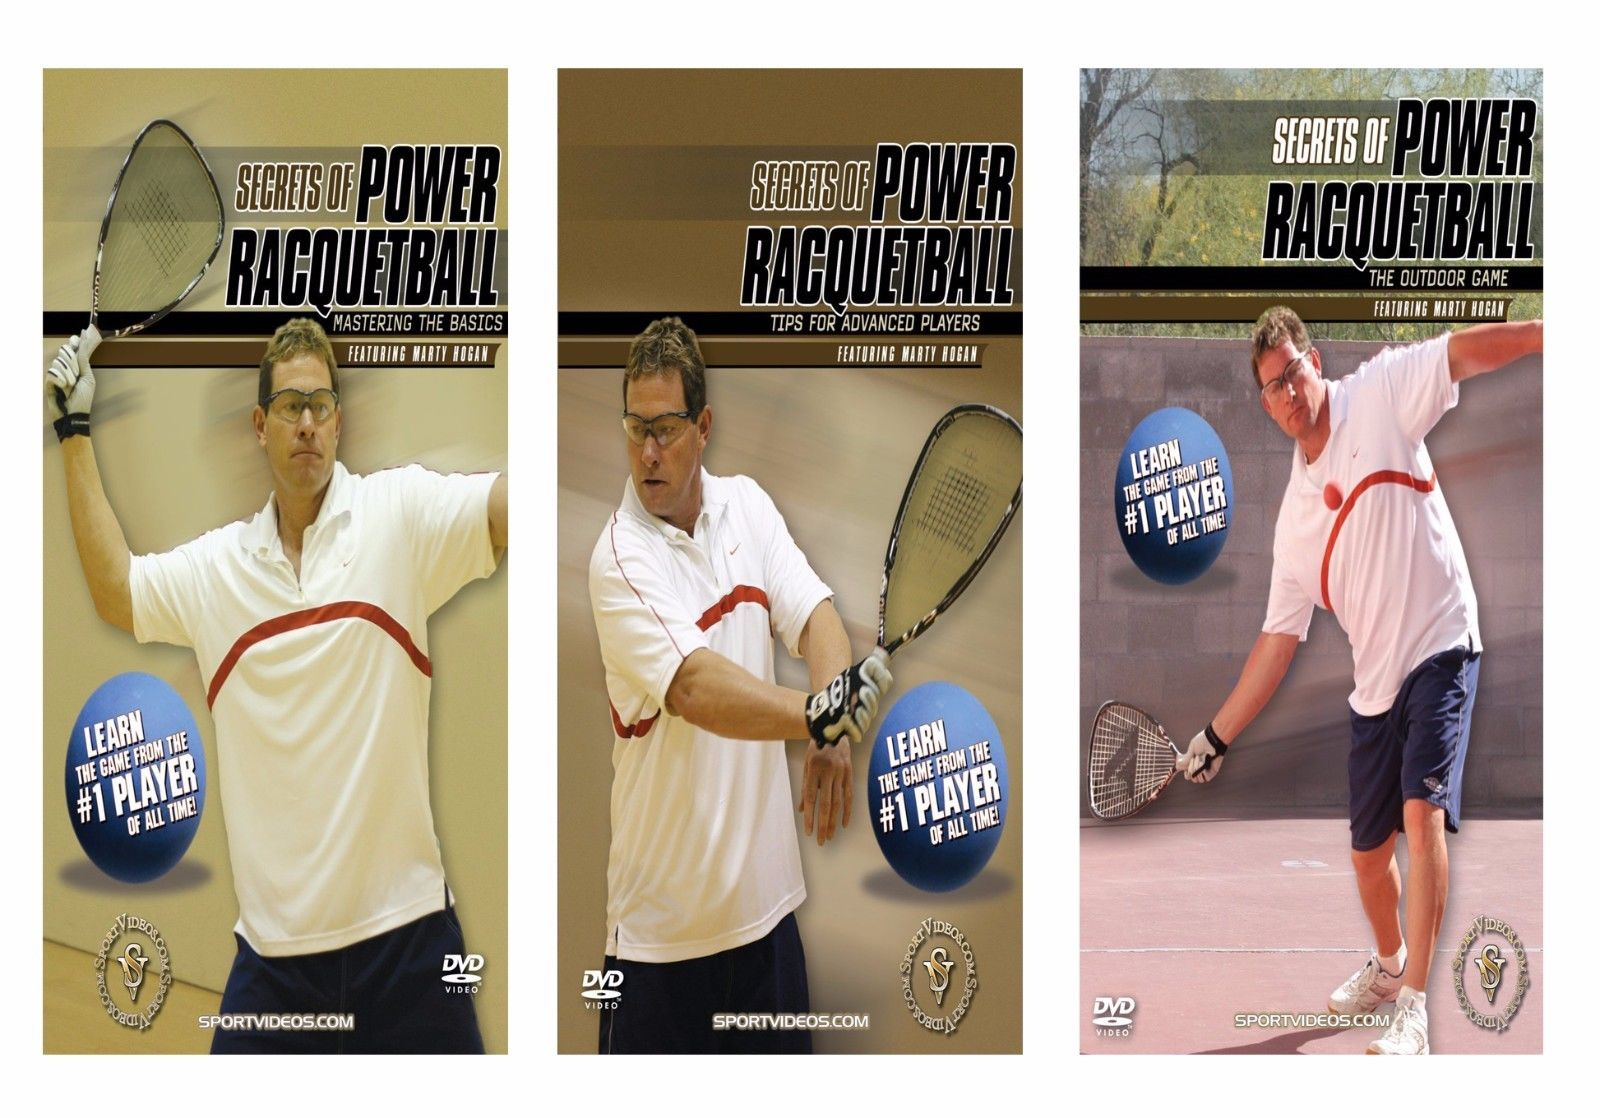 Secrets of Power Racquetball 3 DVD Set featuring Marty Hogan - Free Shipping